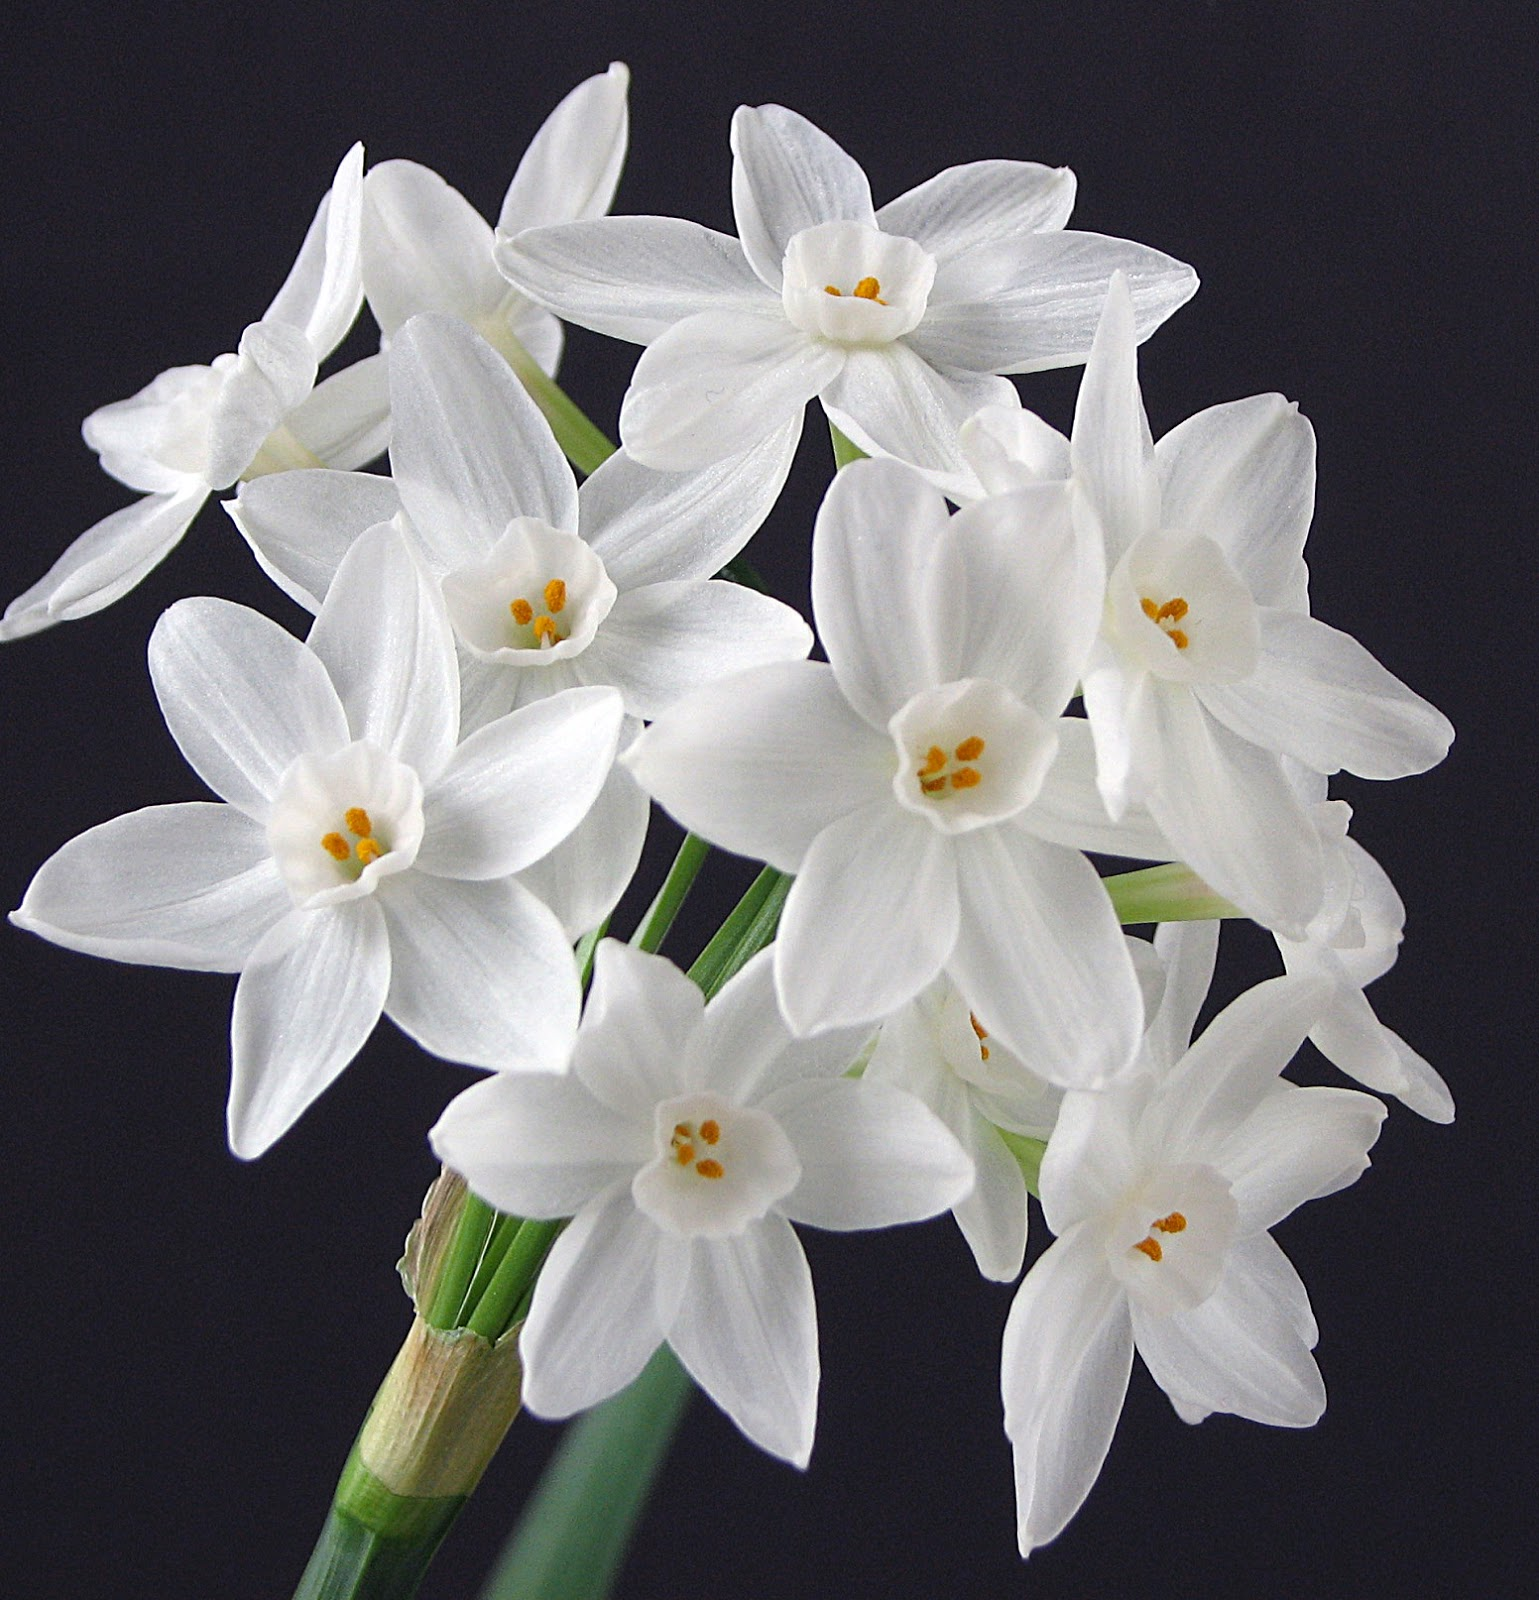 Narcissus Paperwhites